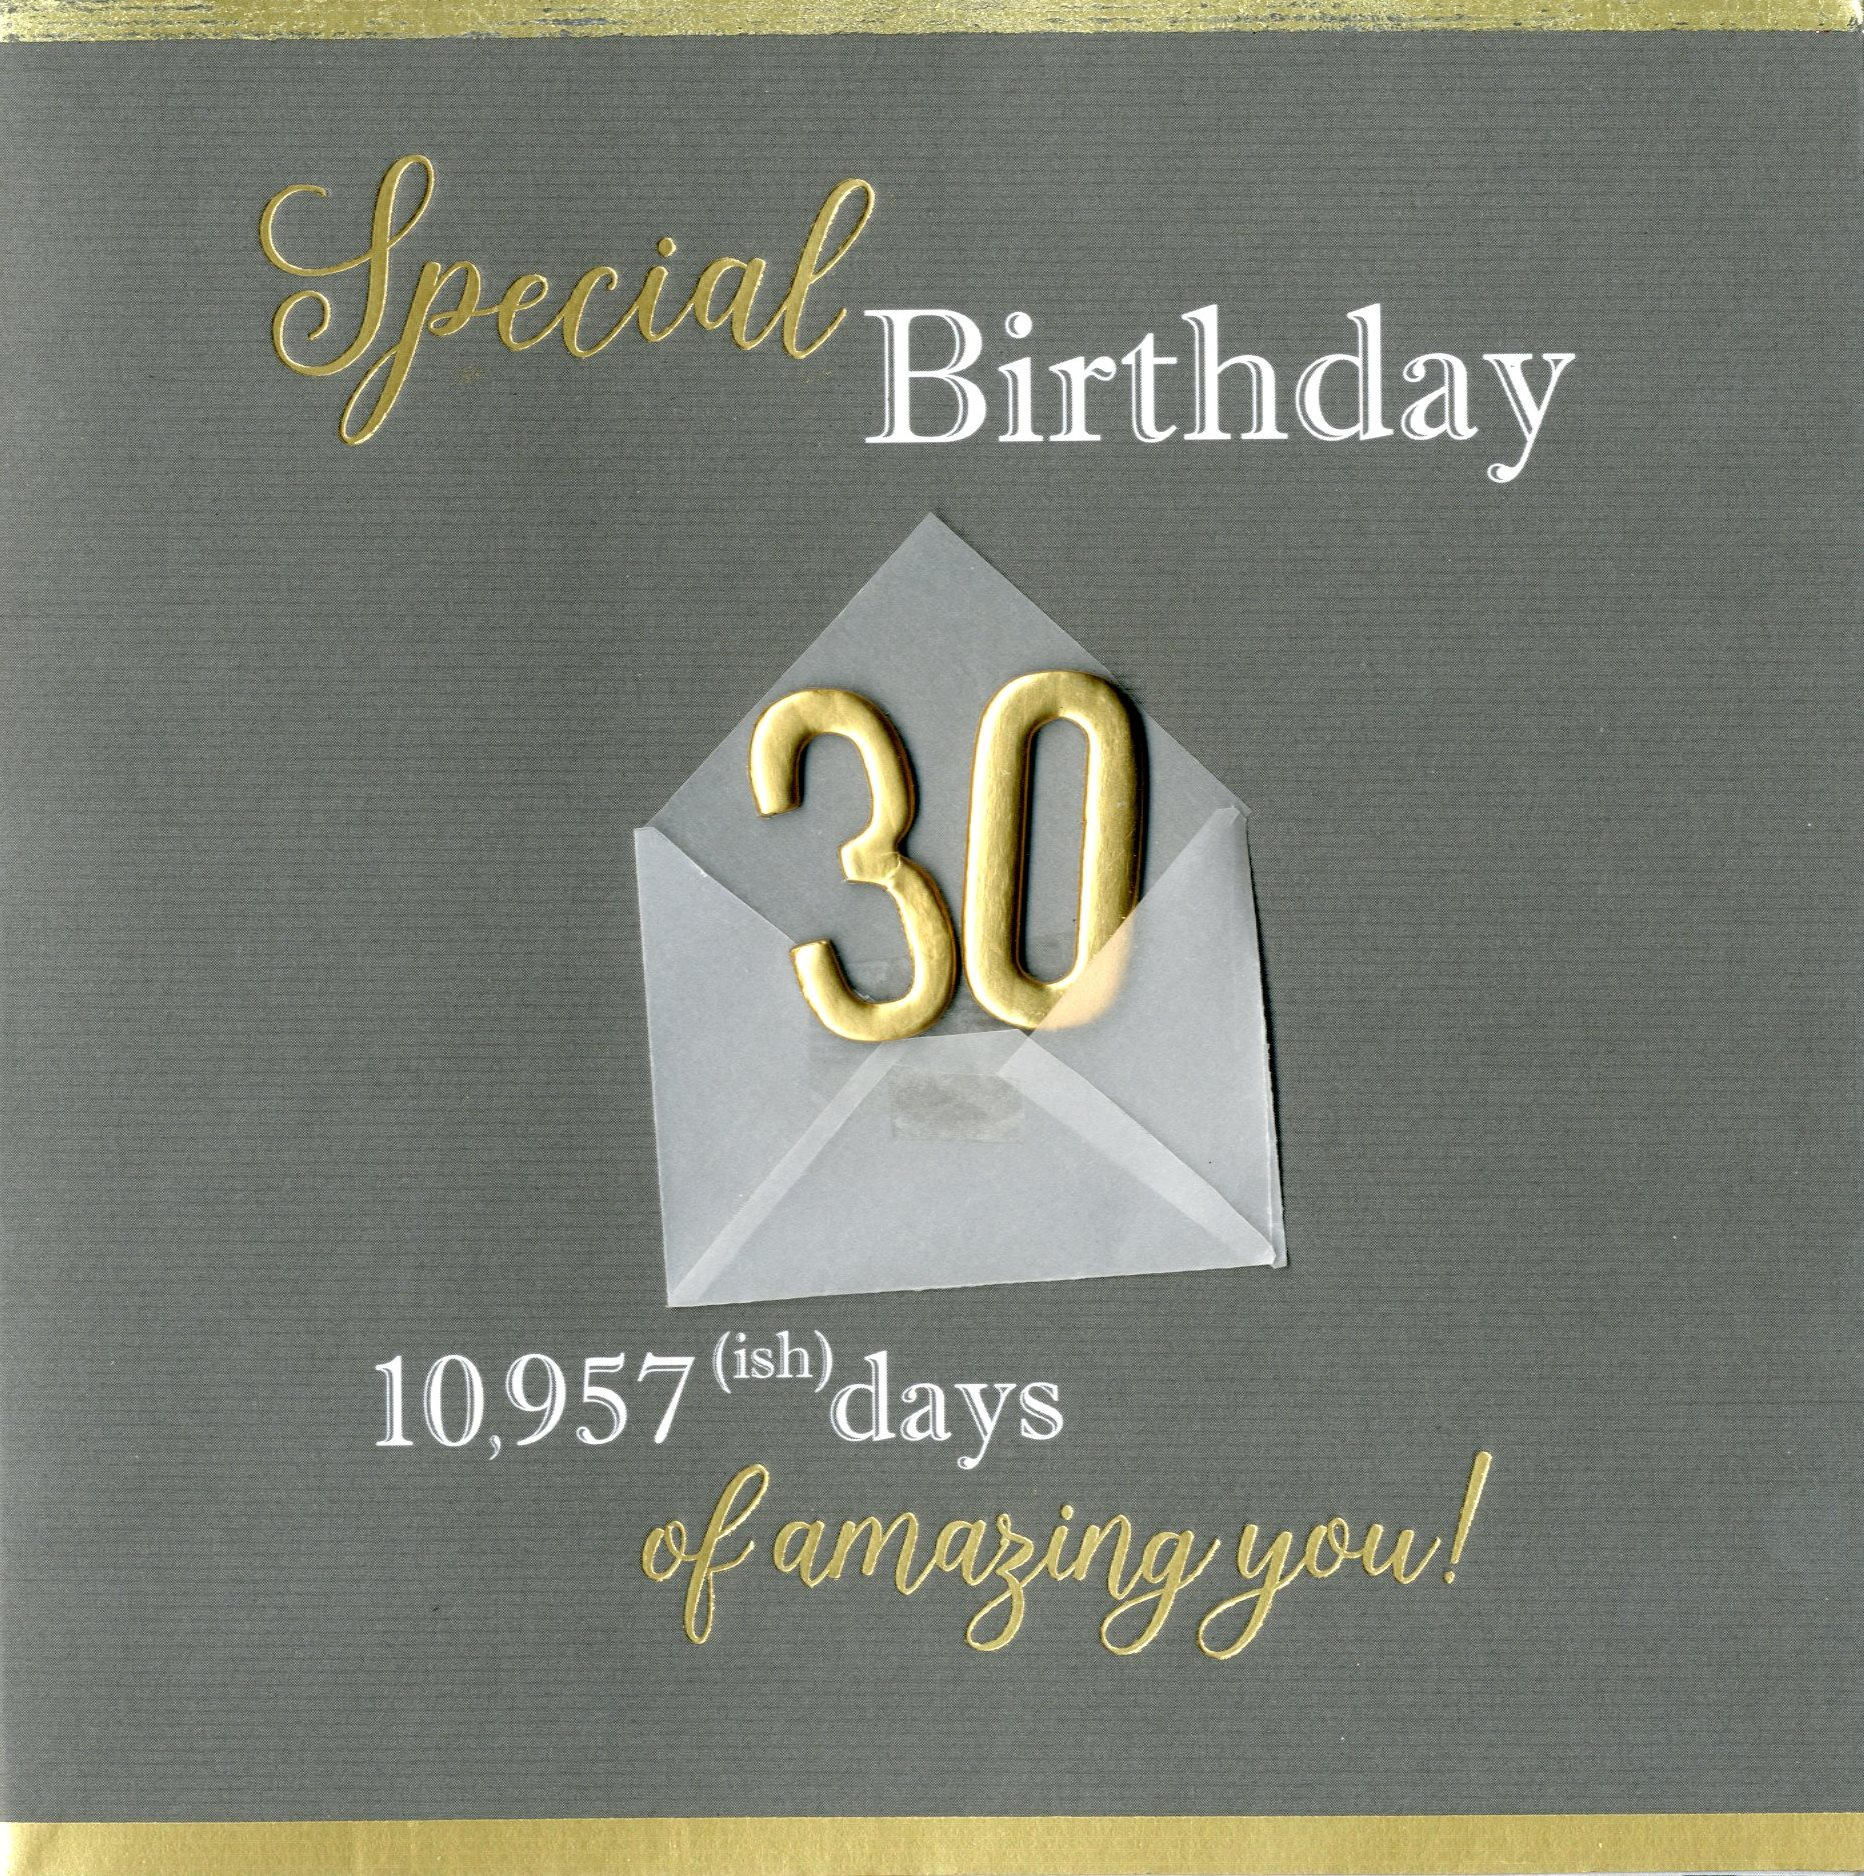 Special 30th birthday greeting card cards love kates special 30th birthday greeting card kristyandbryce Choice Image